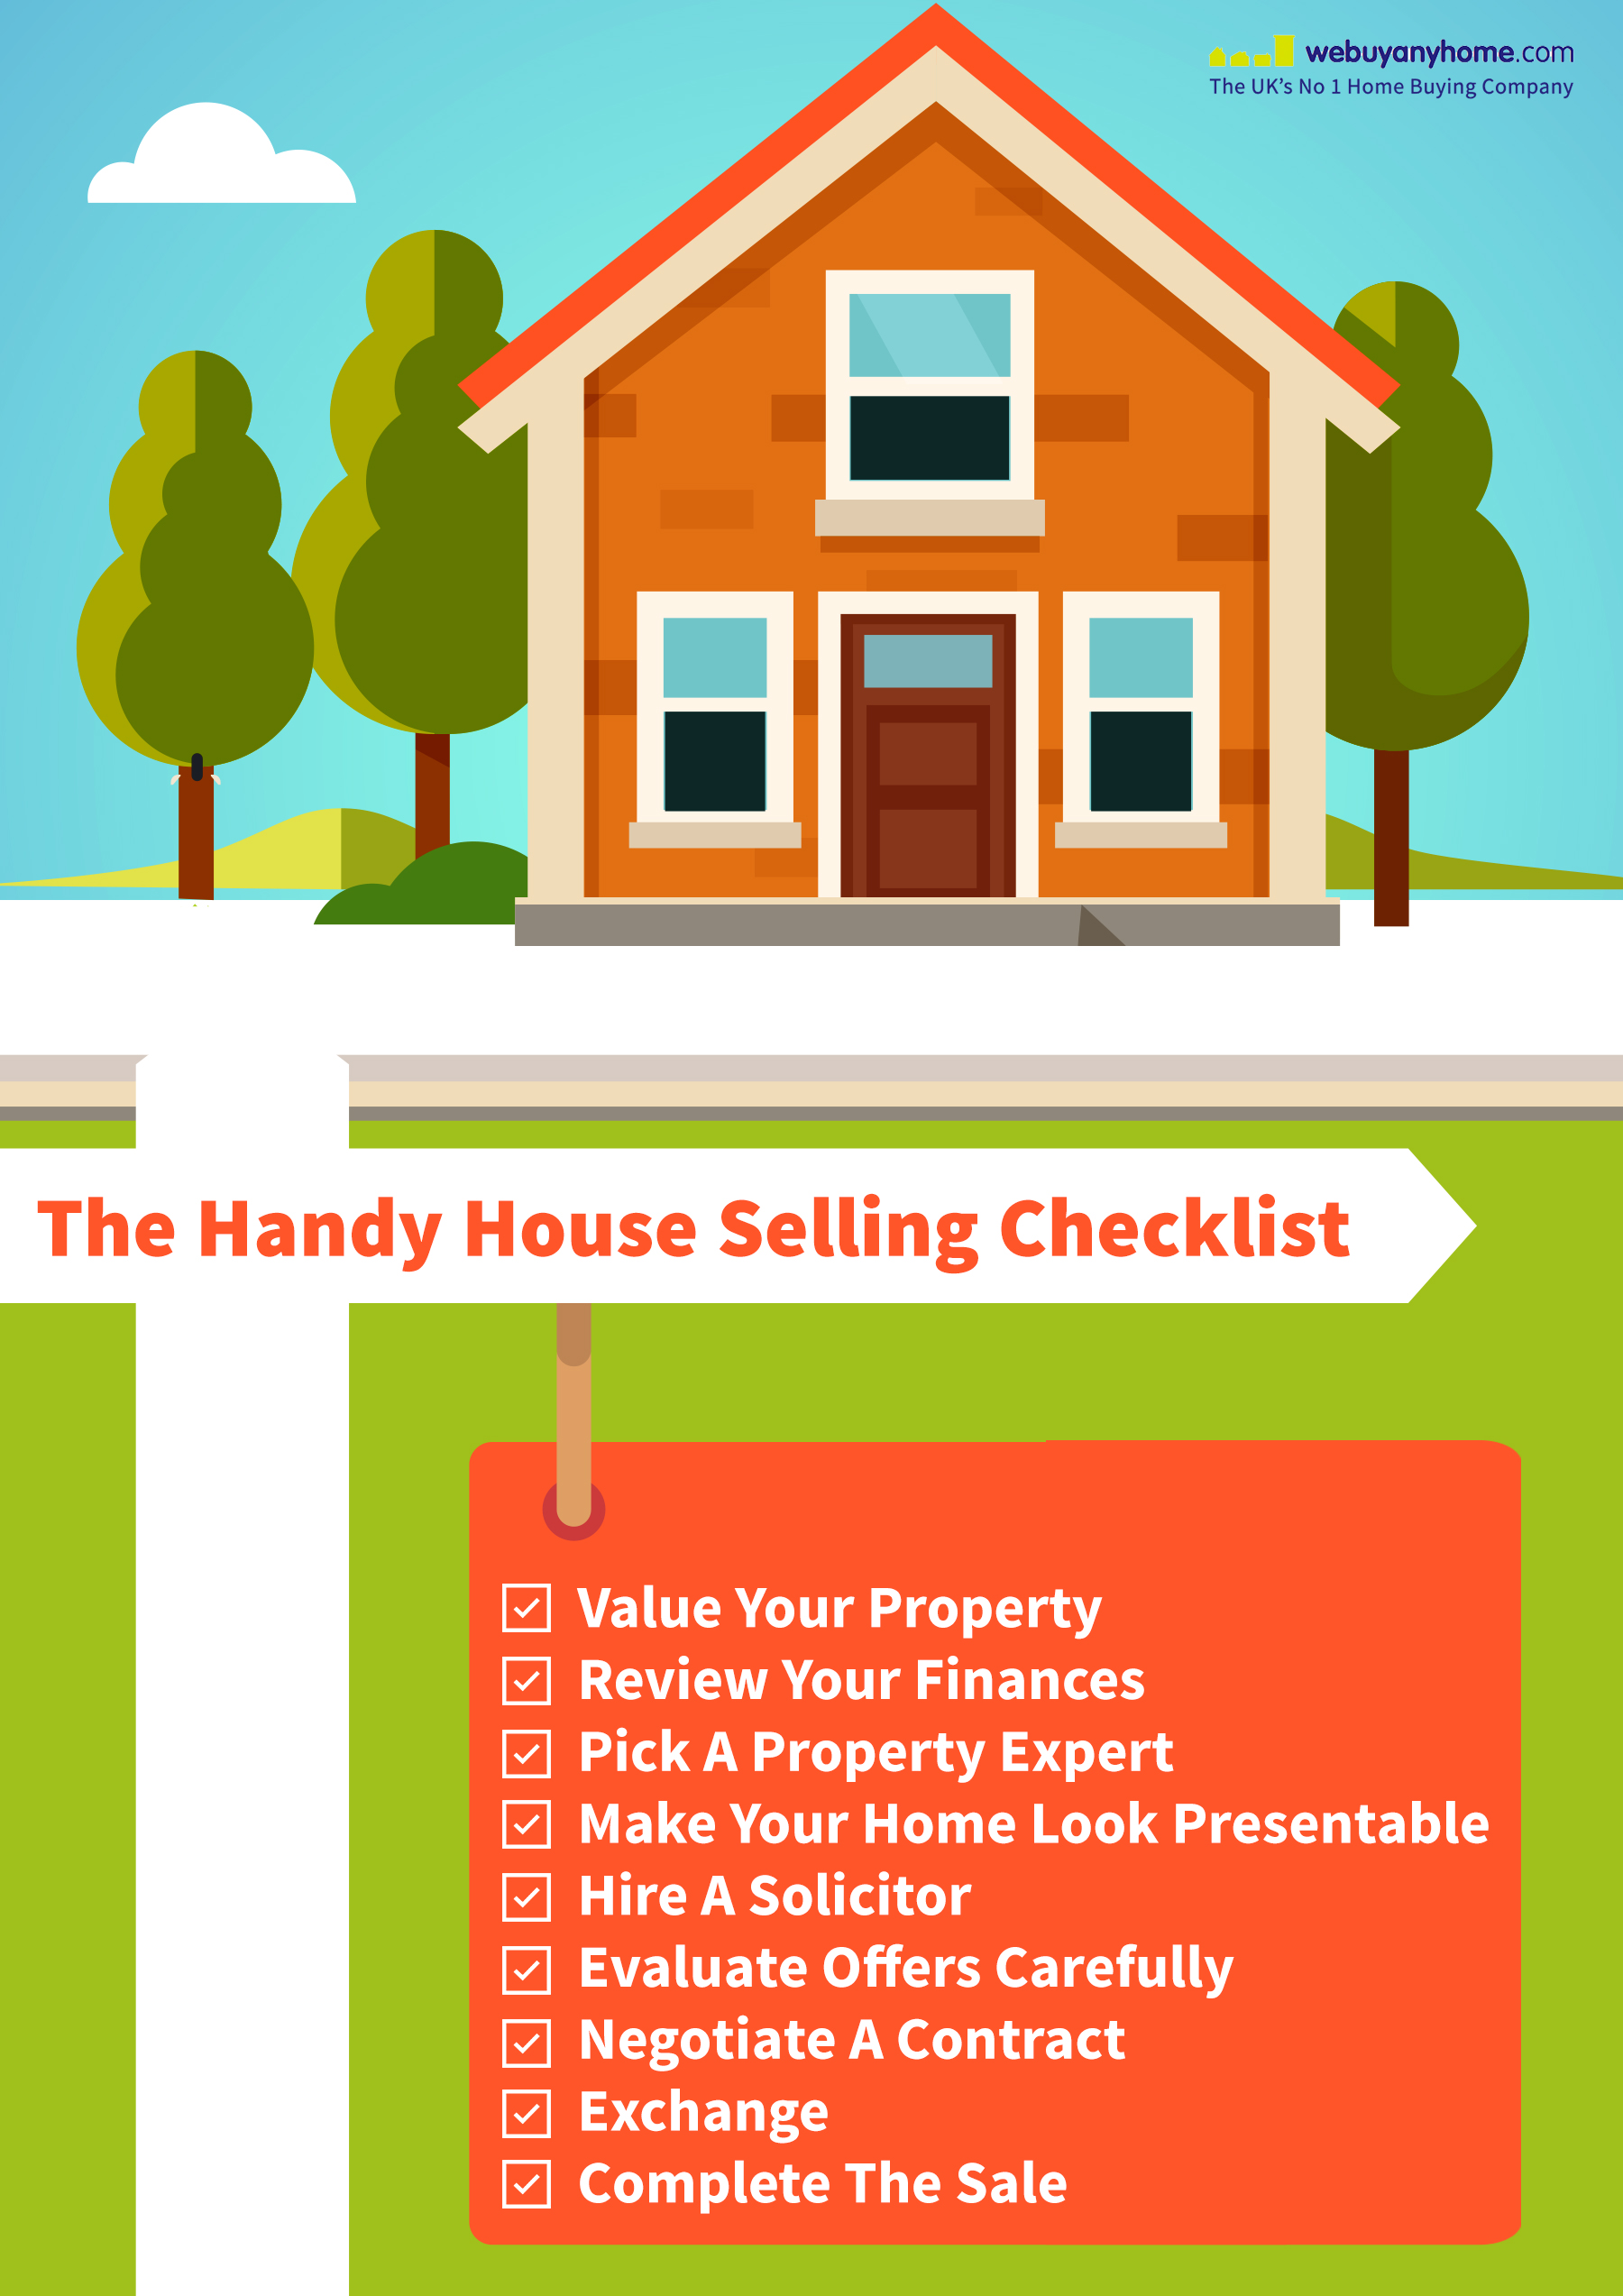 Handy Checklist For Selling A House